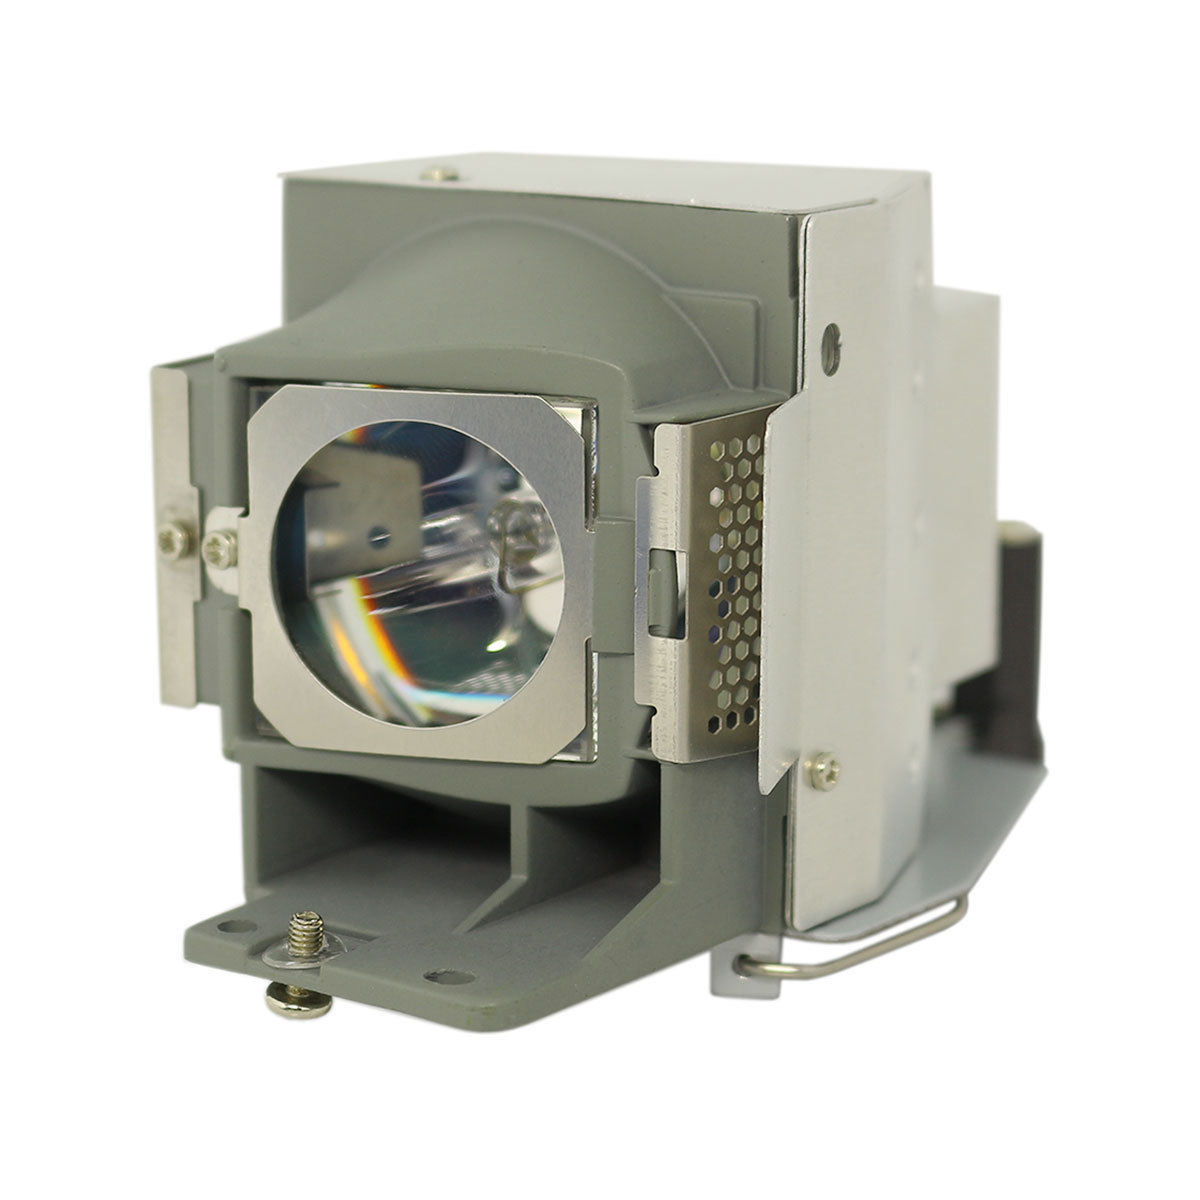 Projector Lamp Bulb RLC-071 RLC071 for VIEWSONIC PJD6253 PJD6383 PJD6383s PJD6553w PJD6683w Projector Bulb Lamp with housing s quire бритвенный набор s quire 6253